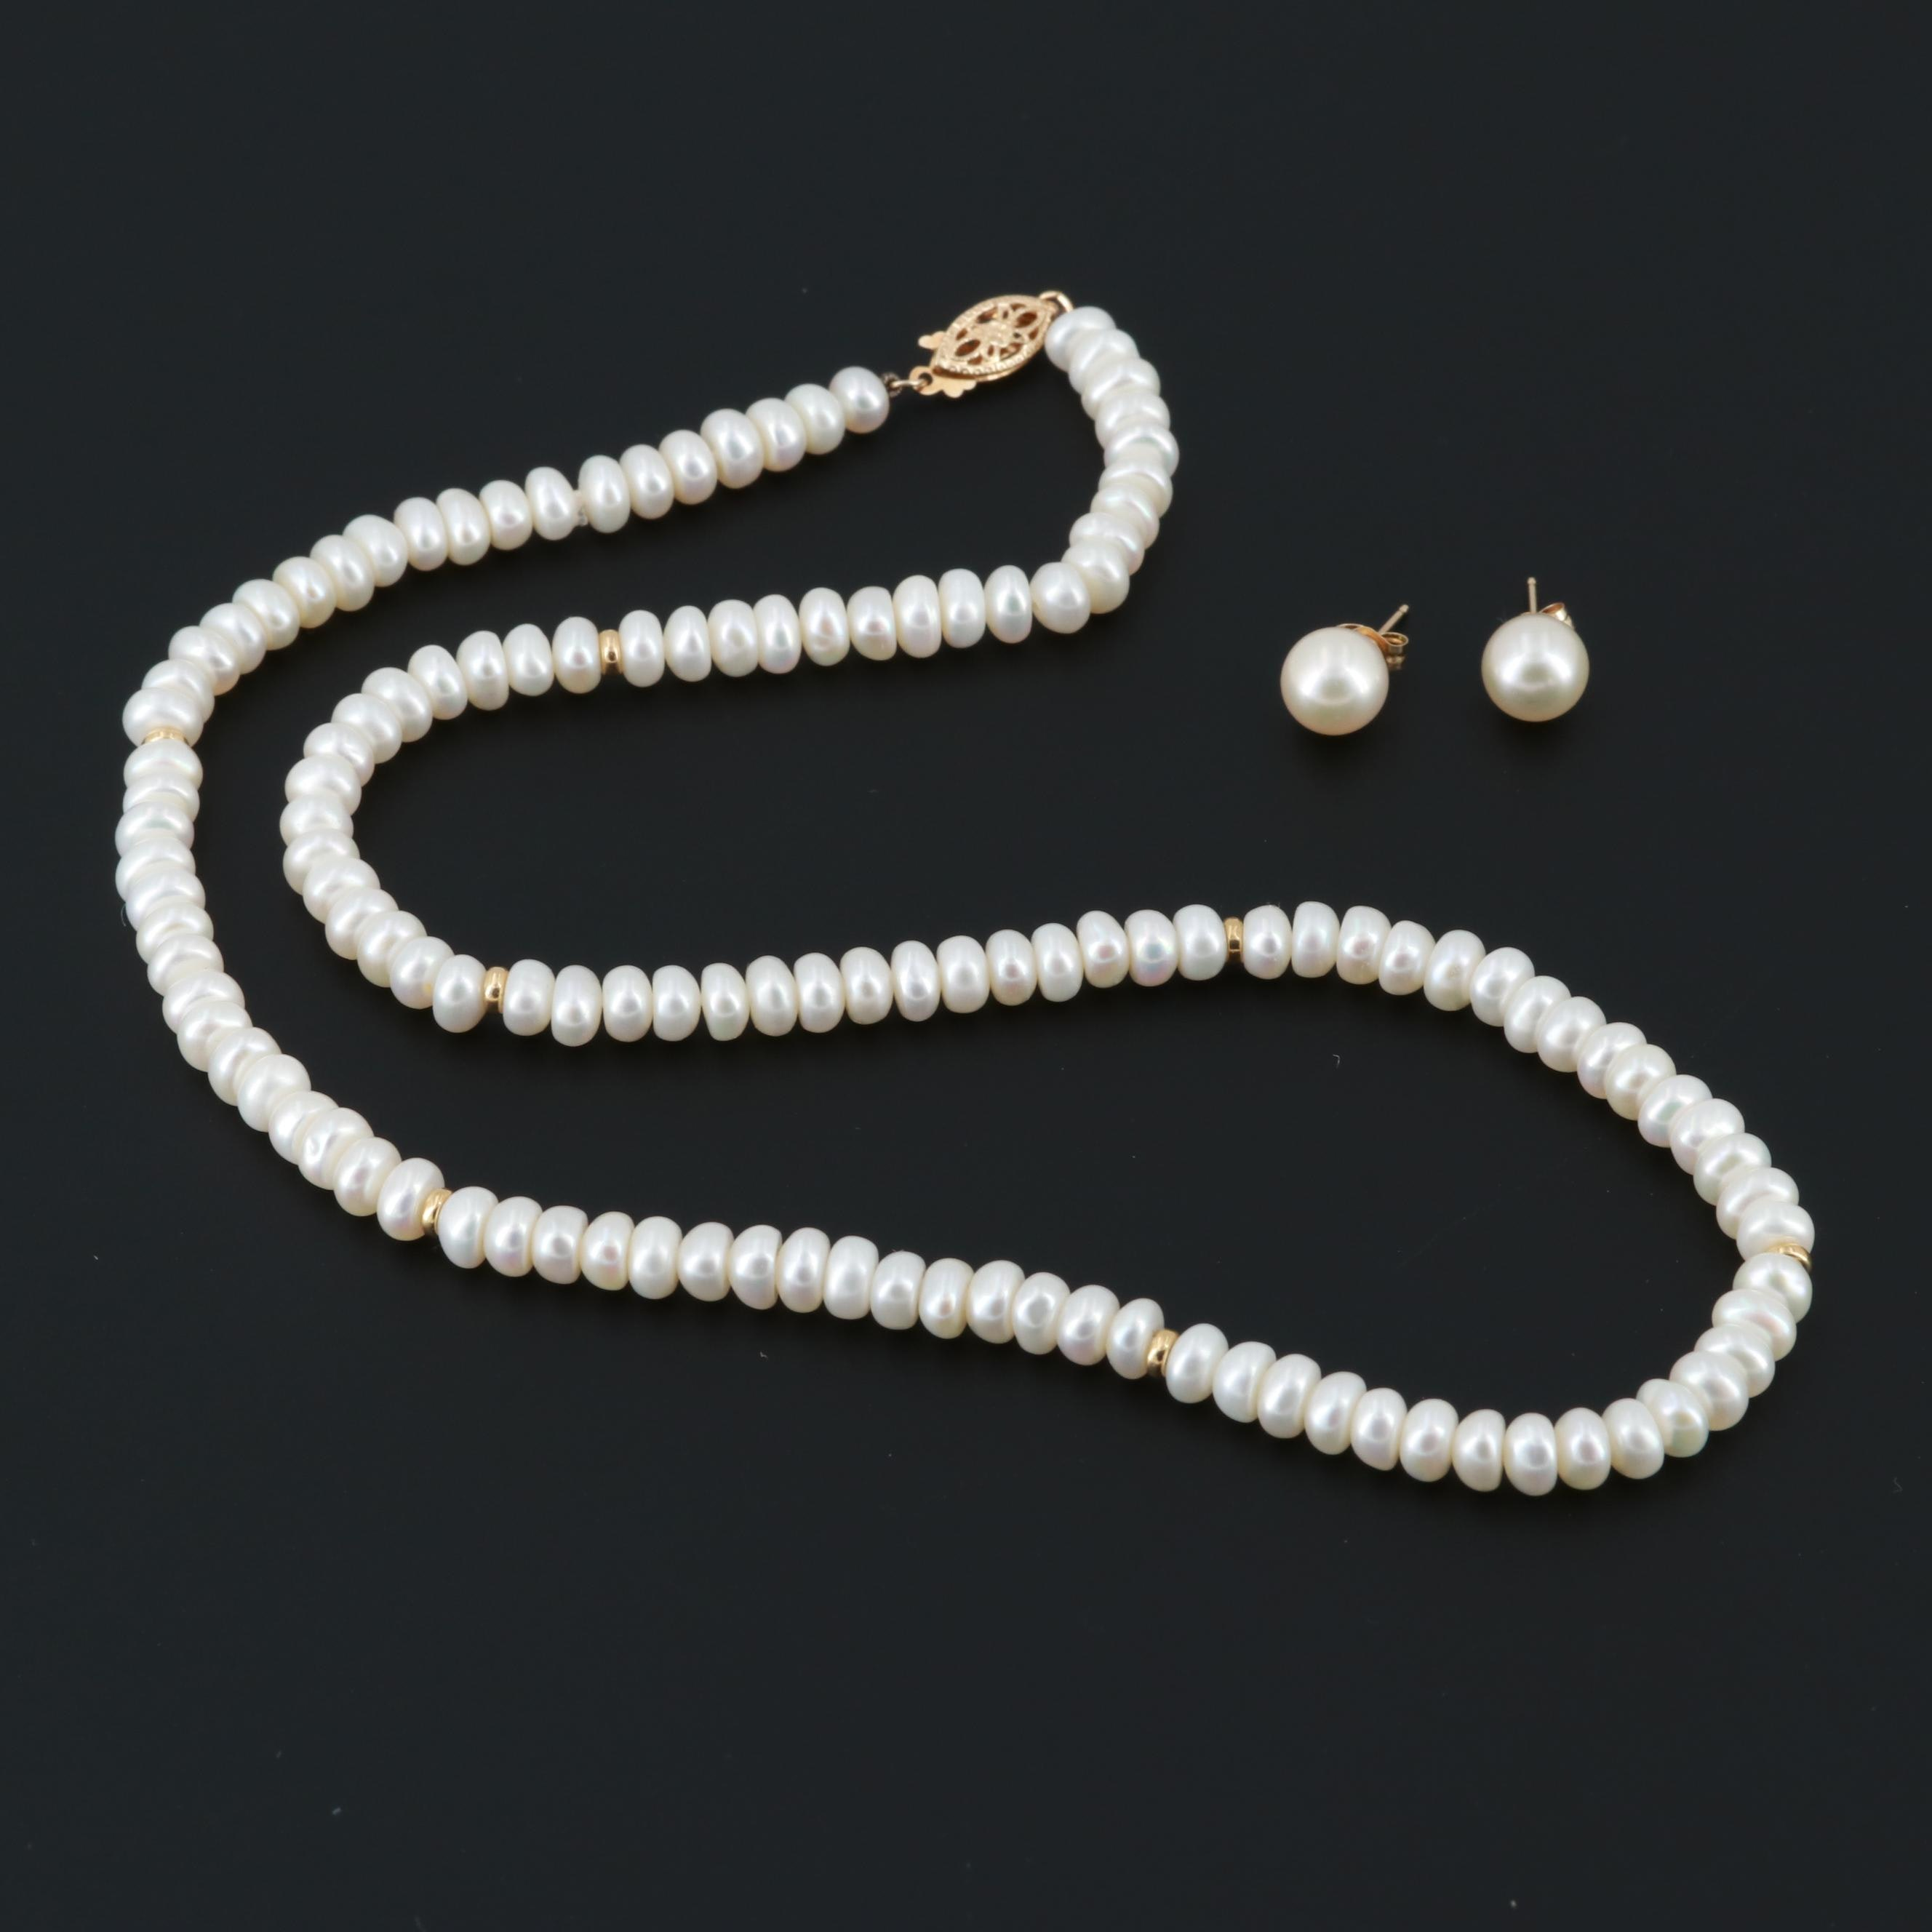 14K Yellow Gold Cultured Pearl Necklace and Stud Earrings